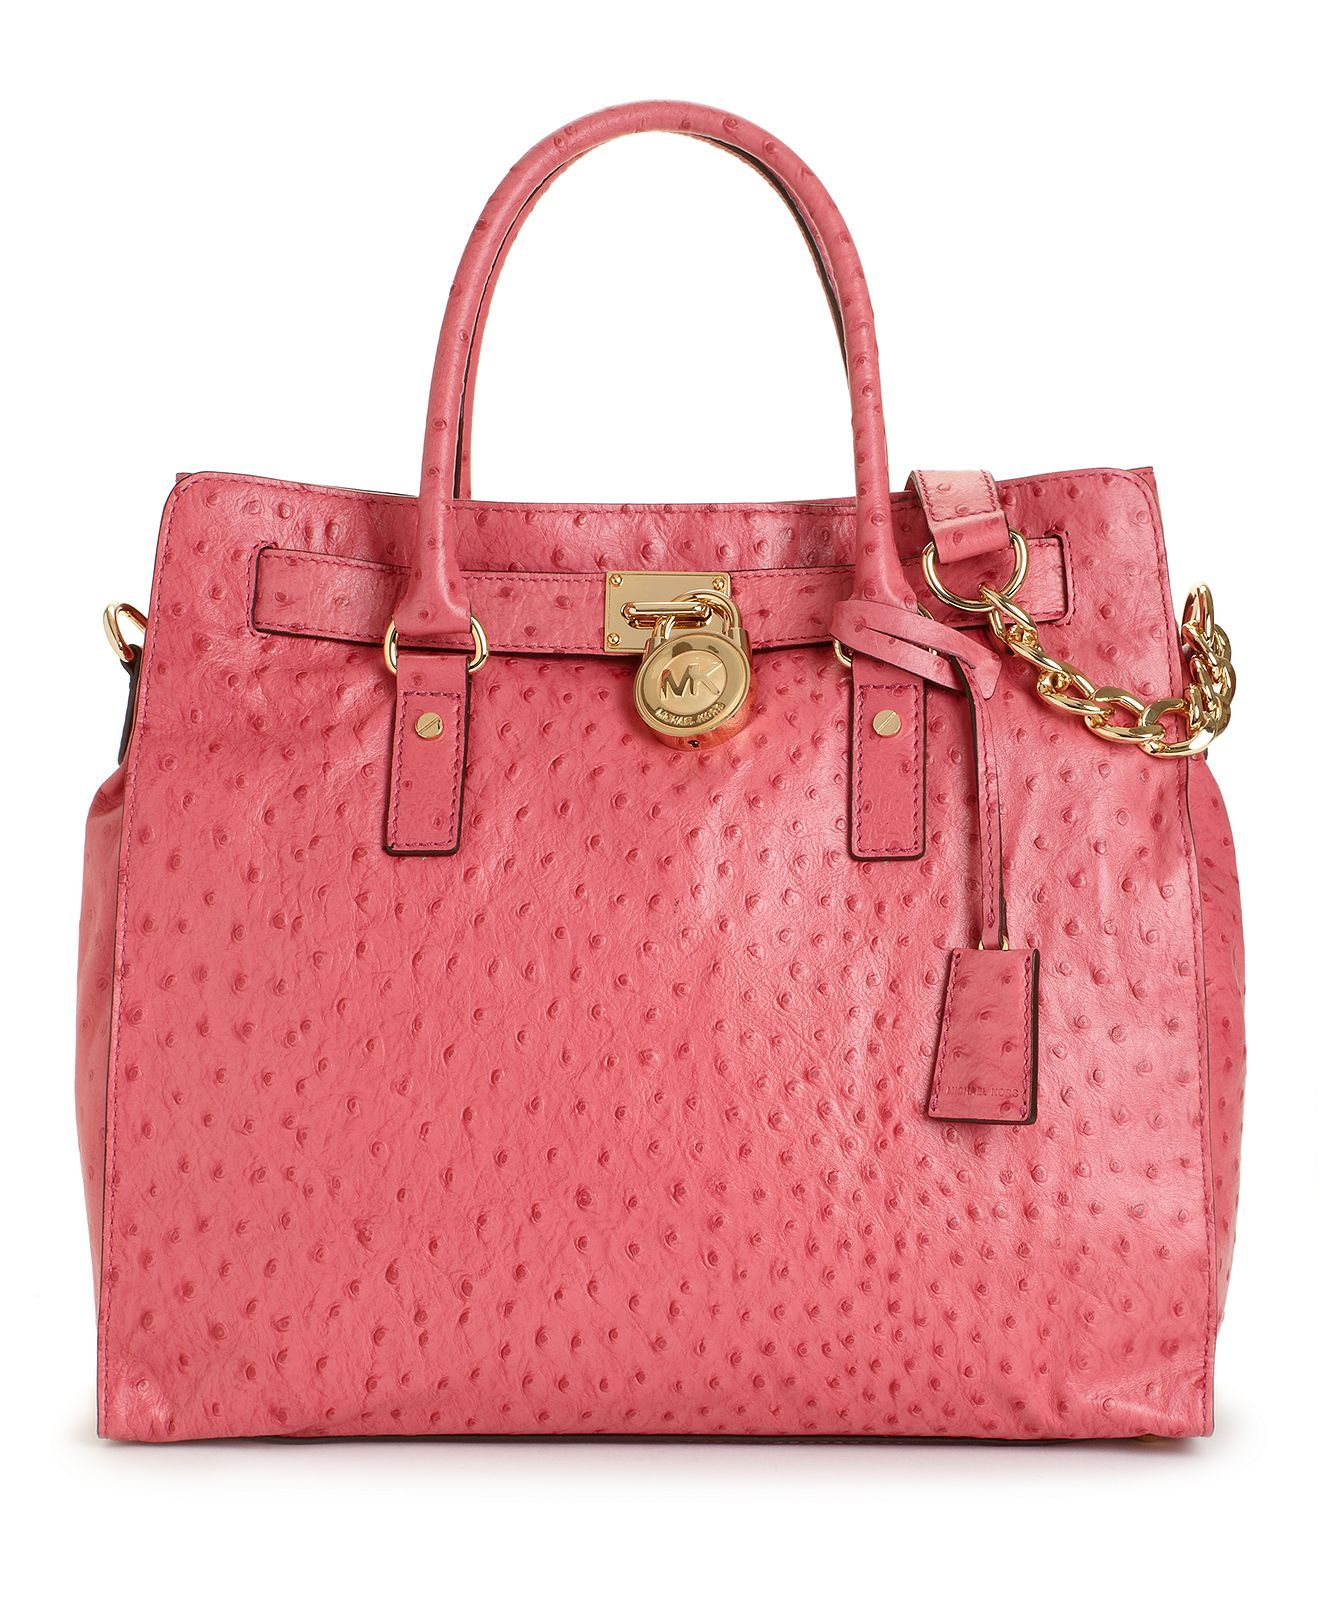 michael kors i would love this if it was not in pink food rh pinterest com